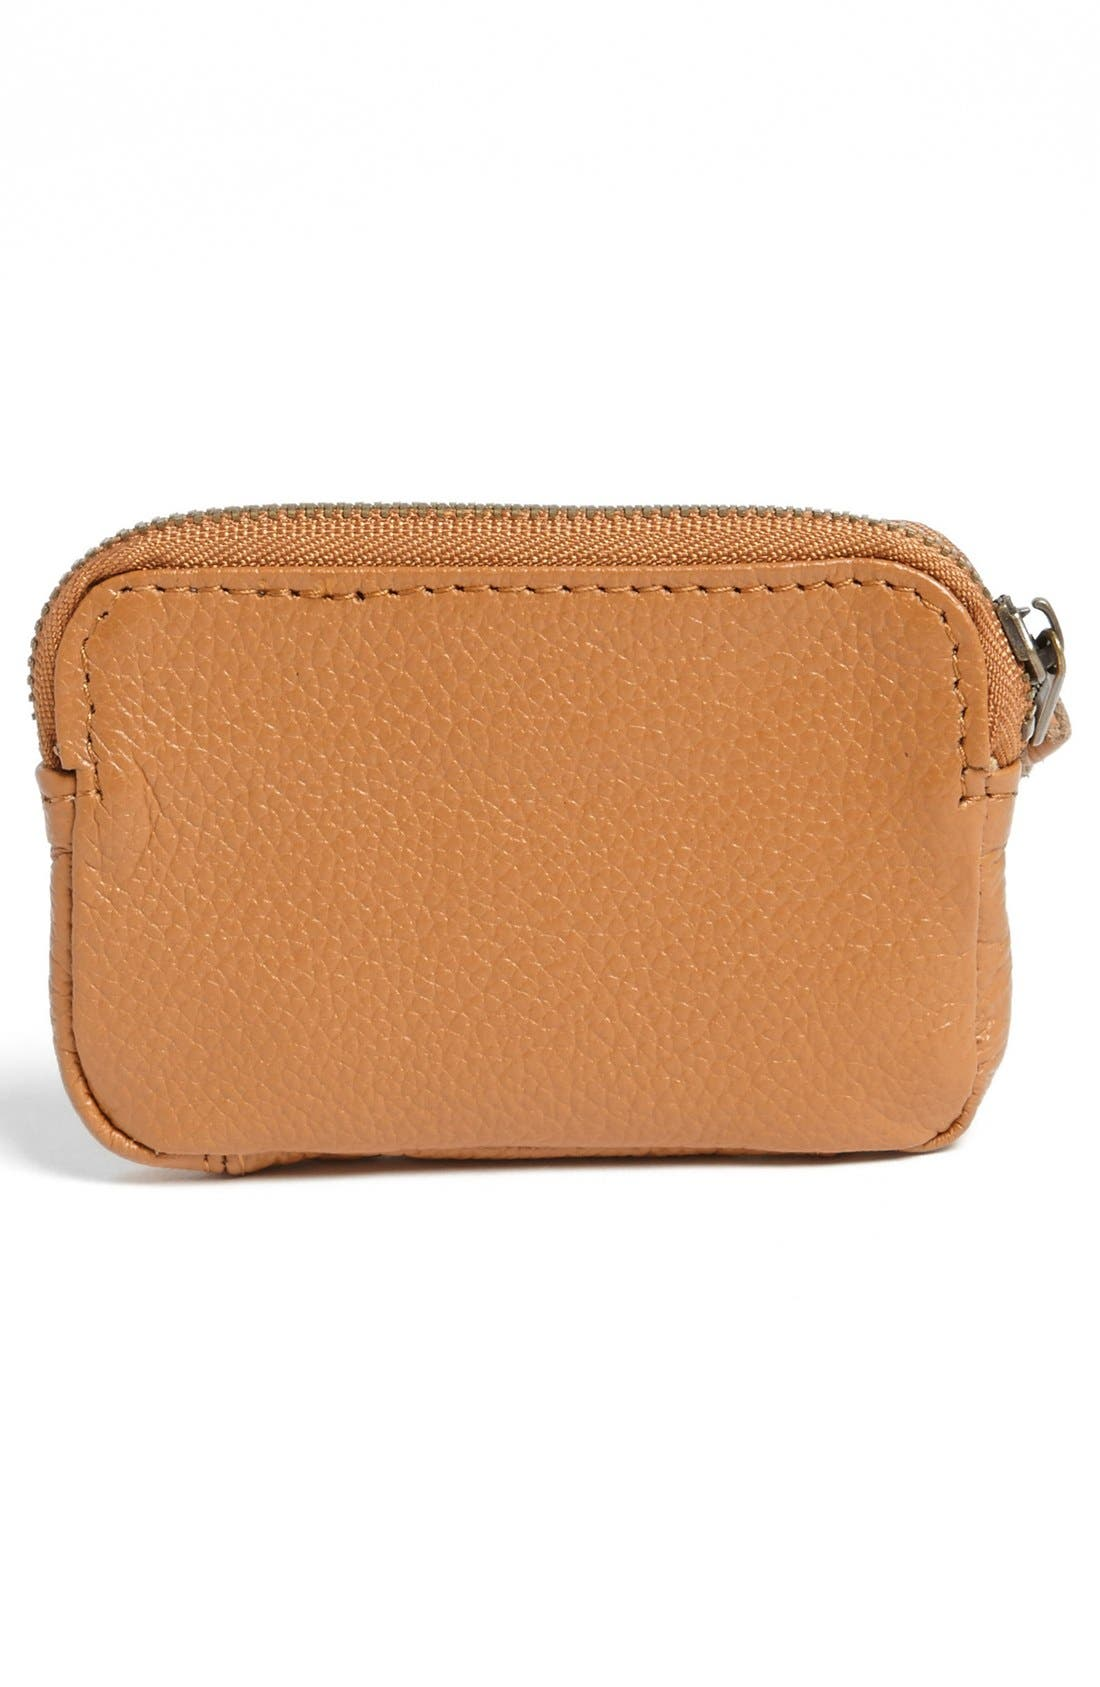 Alternate Image 2  - Herschel Supply Co. 'Oxford' Leather Pouch Wallet